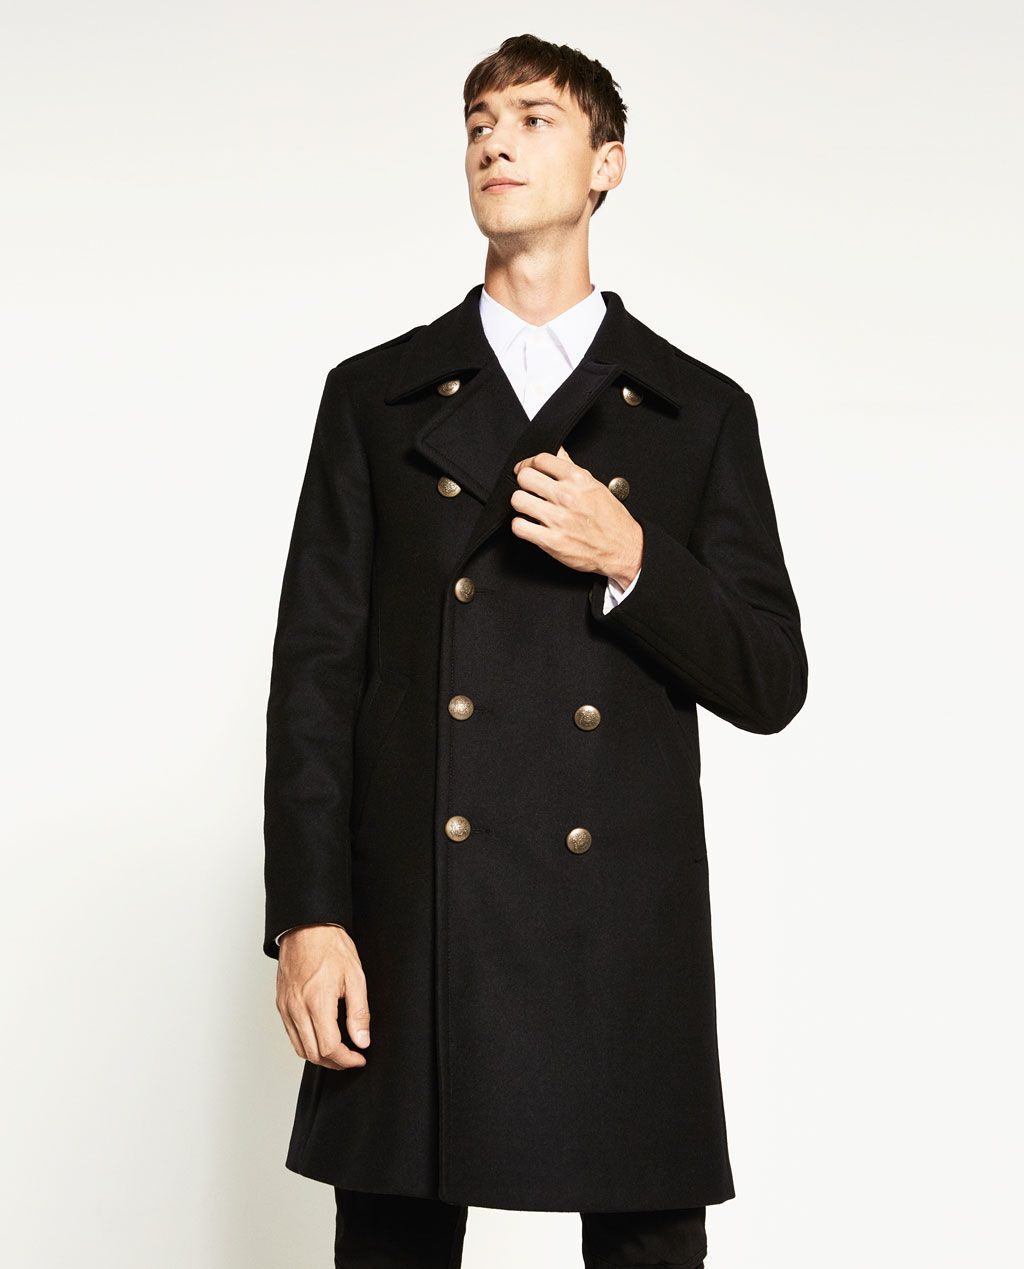 Military Style Coat View All Outerwear Man Zara United Kingdom Military Fashion Military Style Coats Coat [ 1269 x 1024 Pixel ]